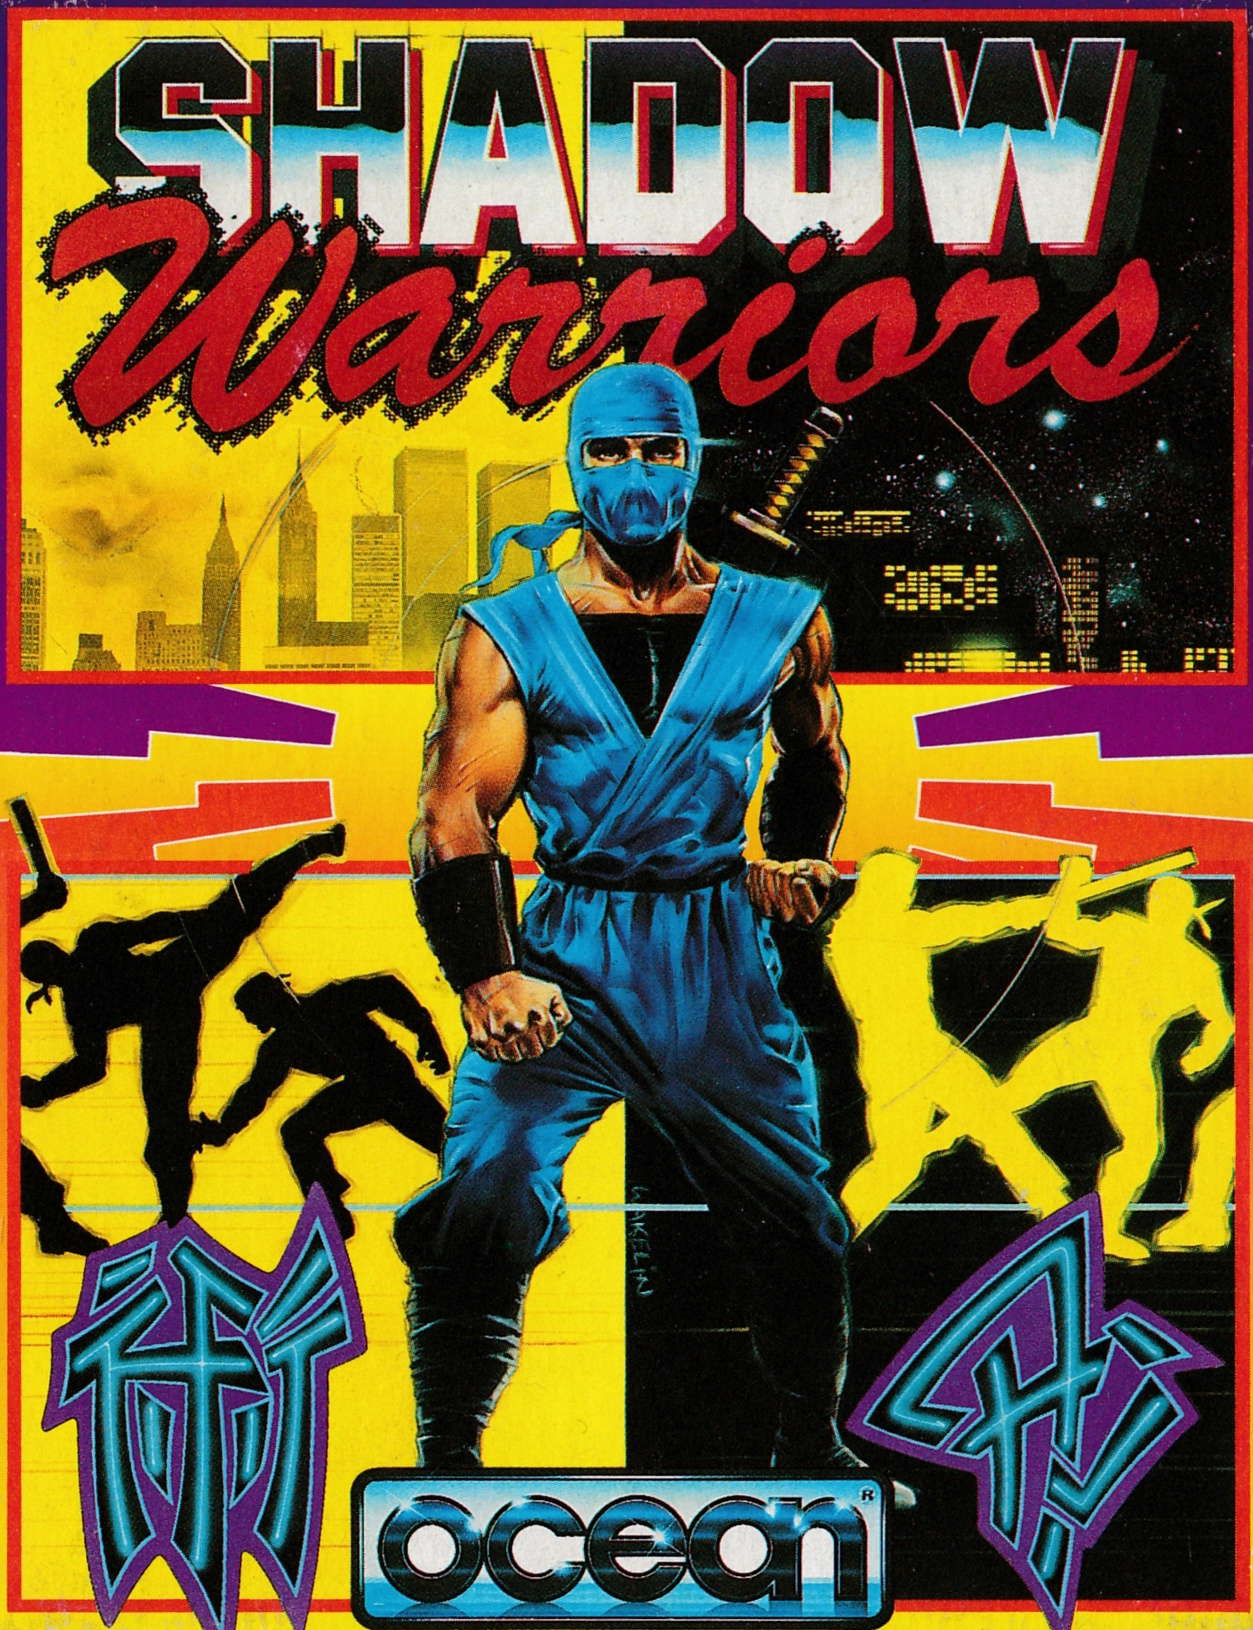 cover of the Amstrad CPC game Shadow Warriors  by GameBase CPC